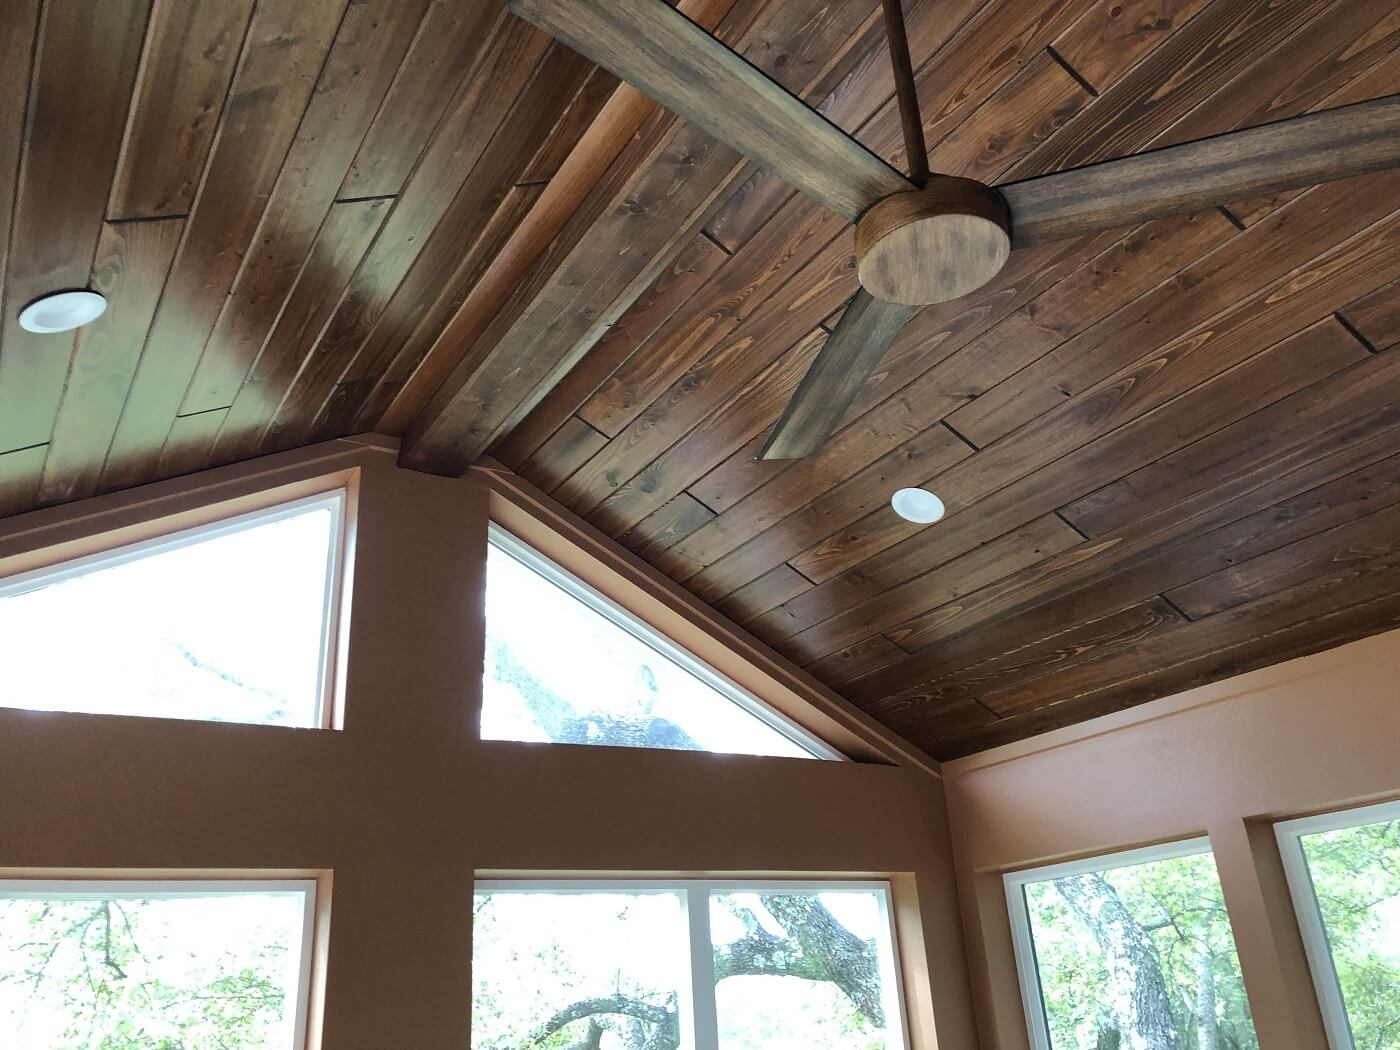 Sunroom ceiling detail with lighting